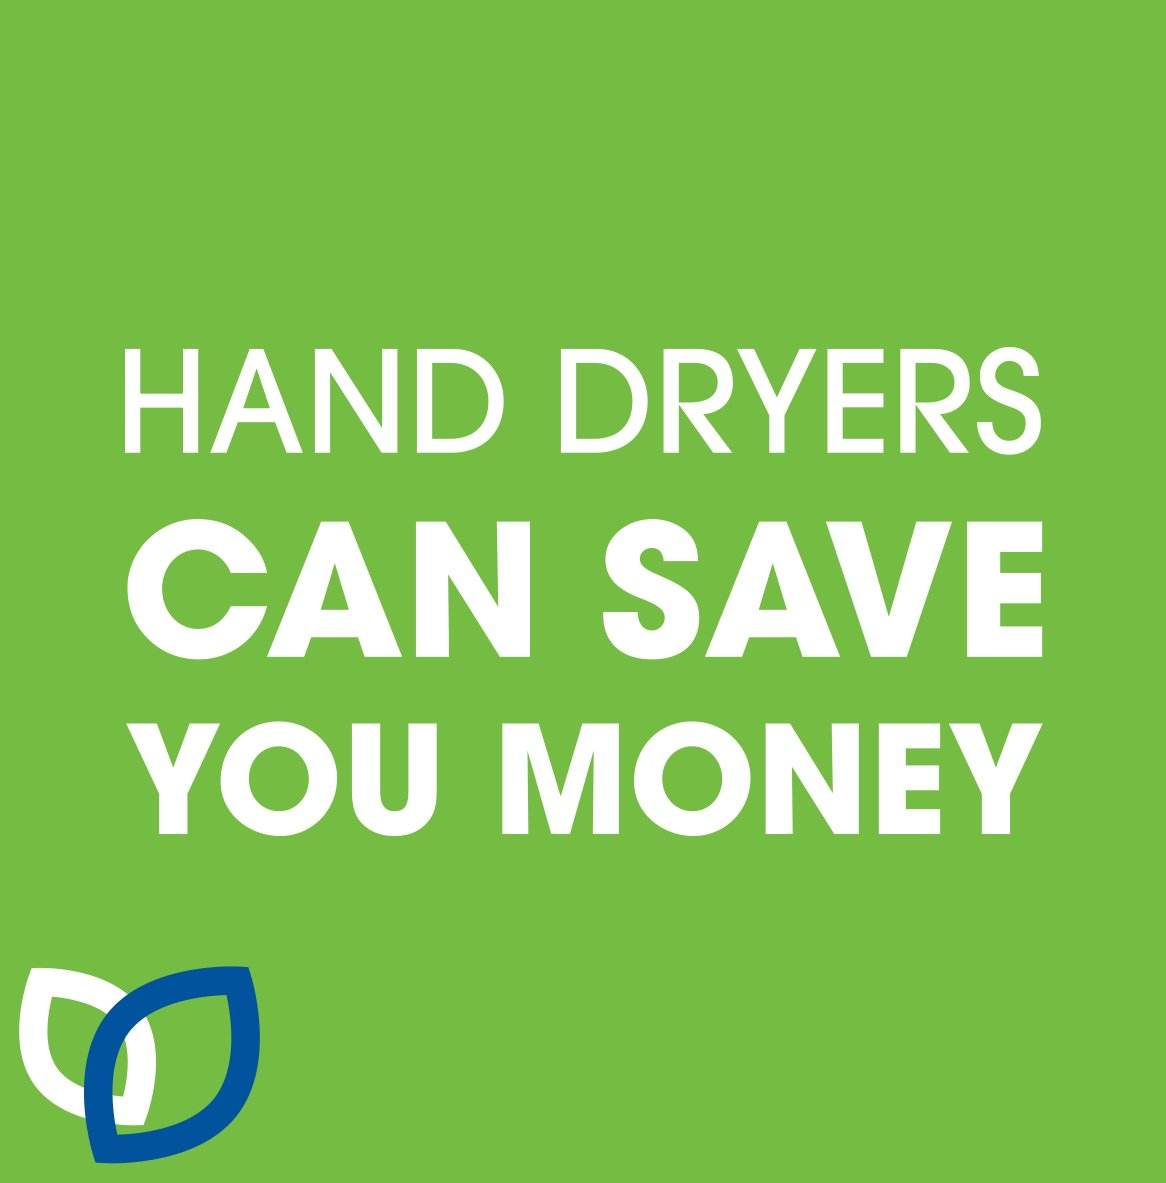 Hand Dryers Can Save You Money - Hand dryer